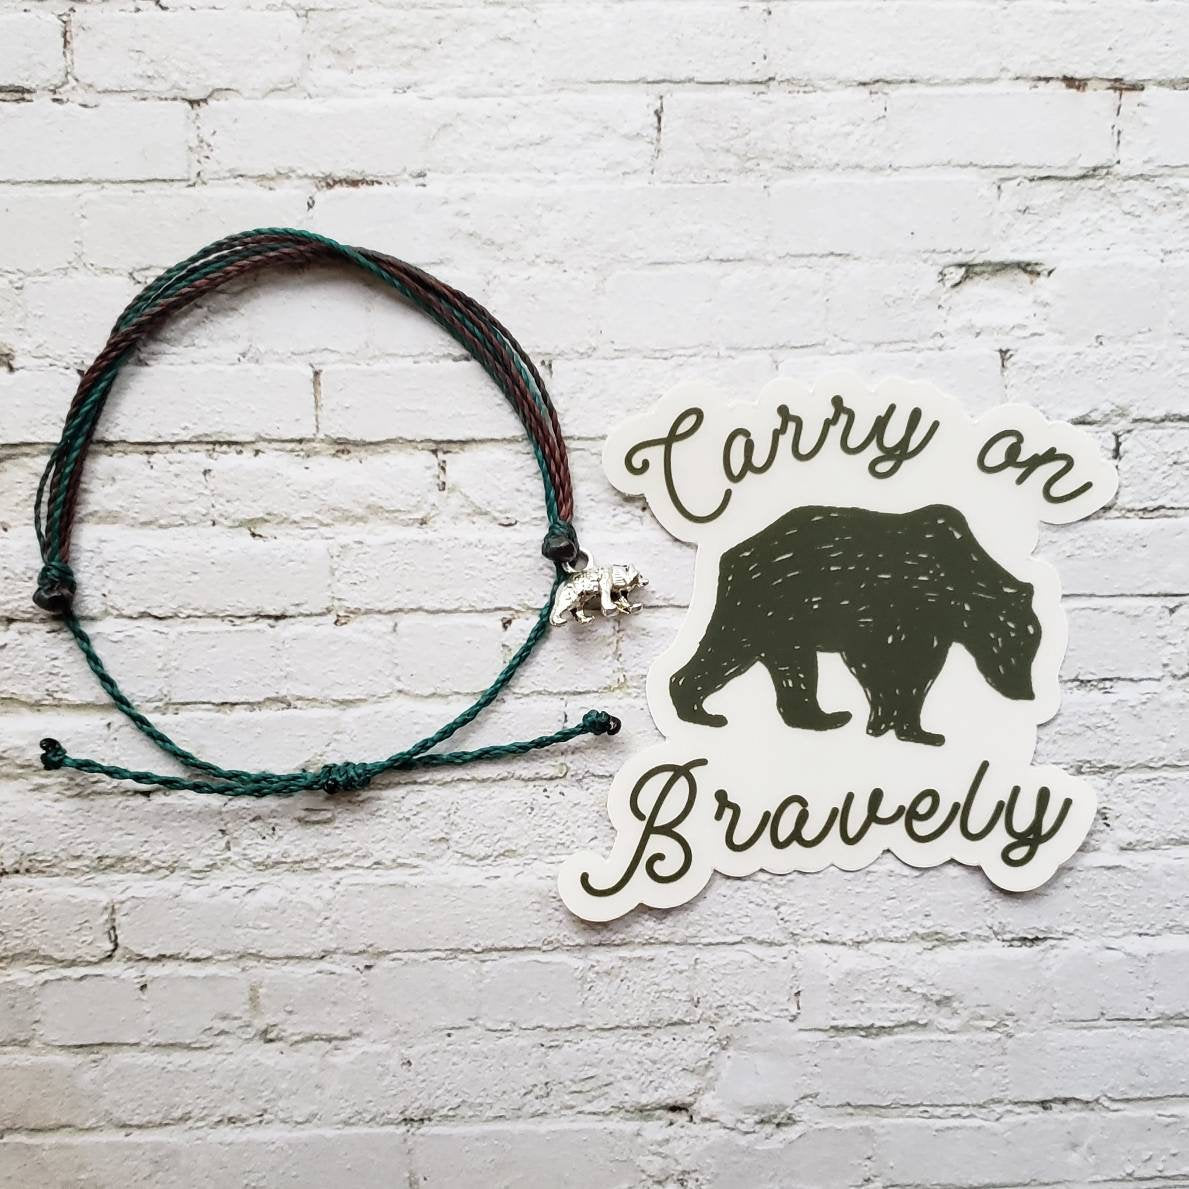 Wanderer Companion Bracelet | Carry on Bravely Wanderer Bear